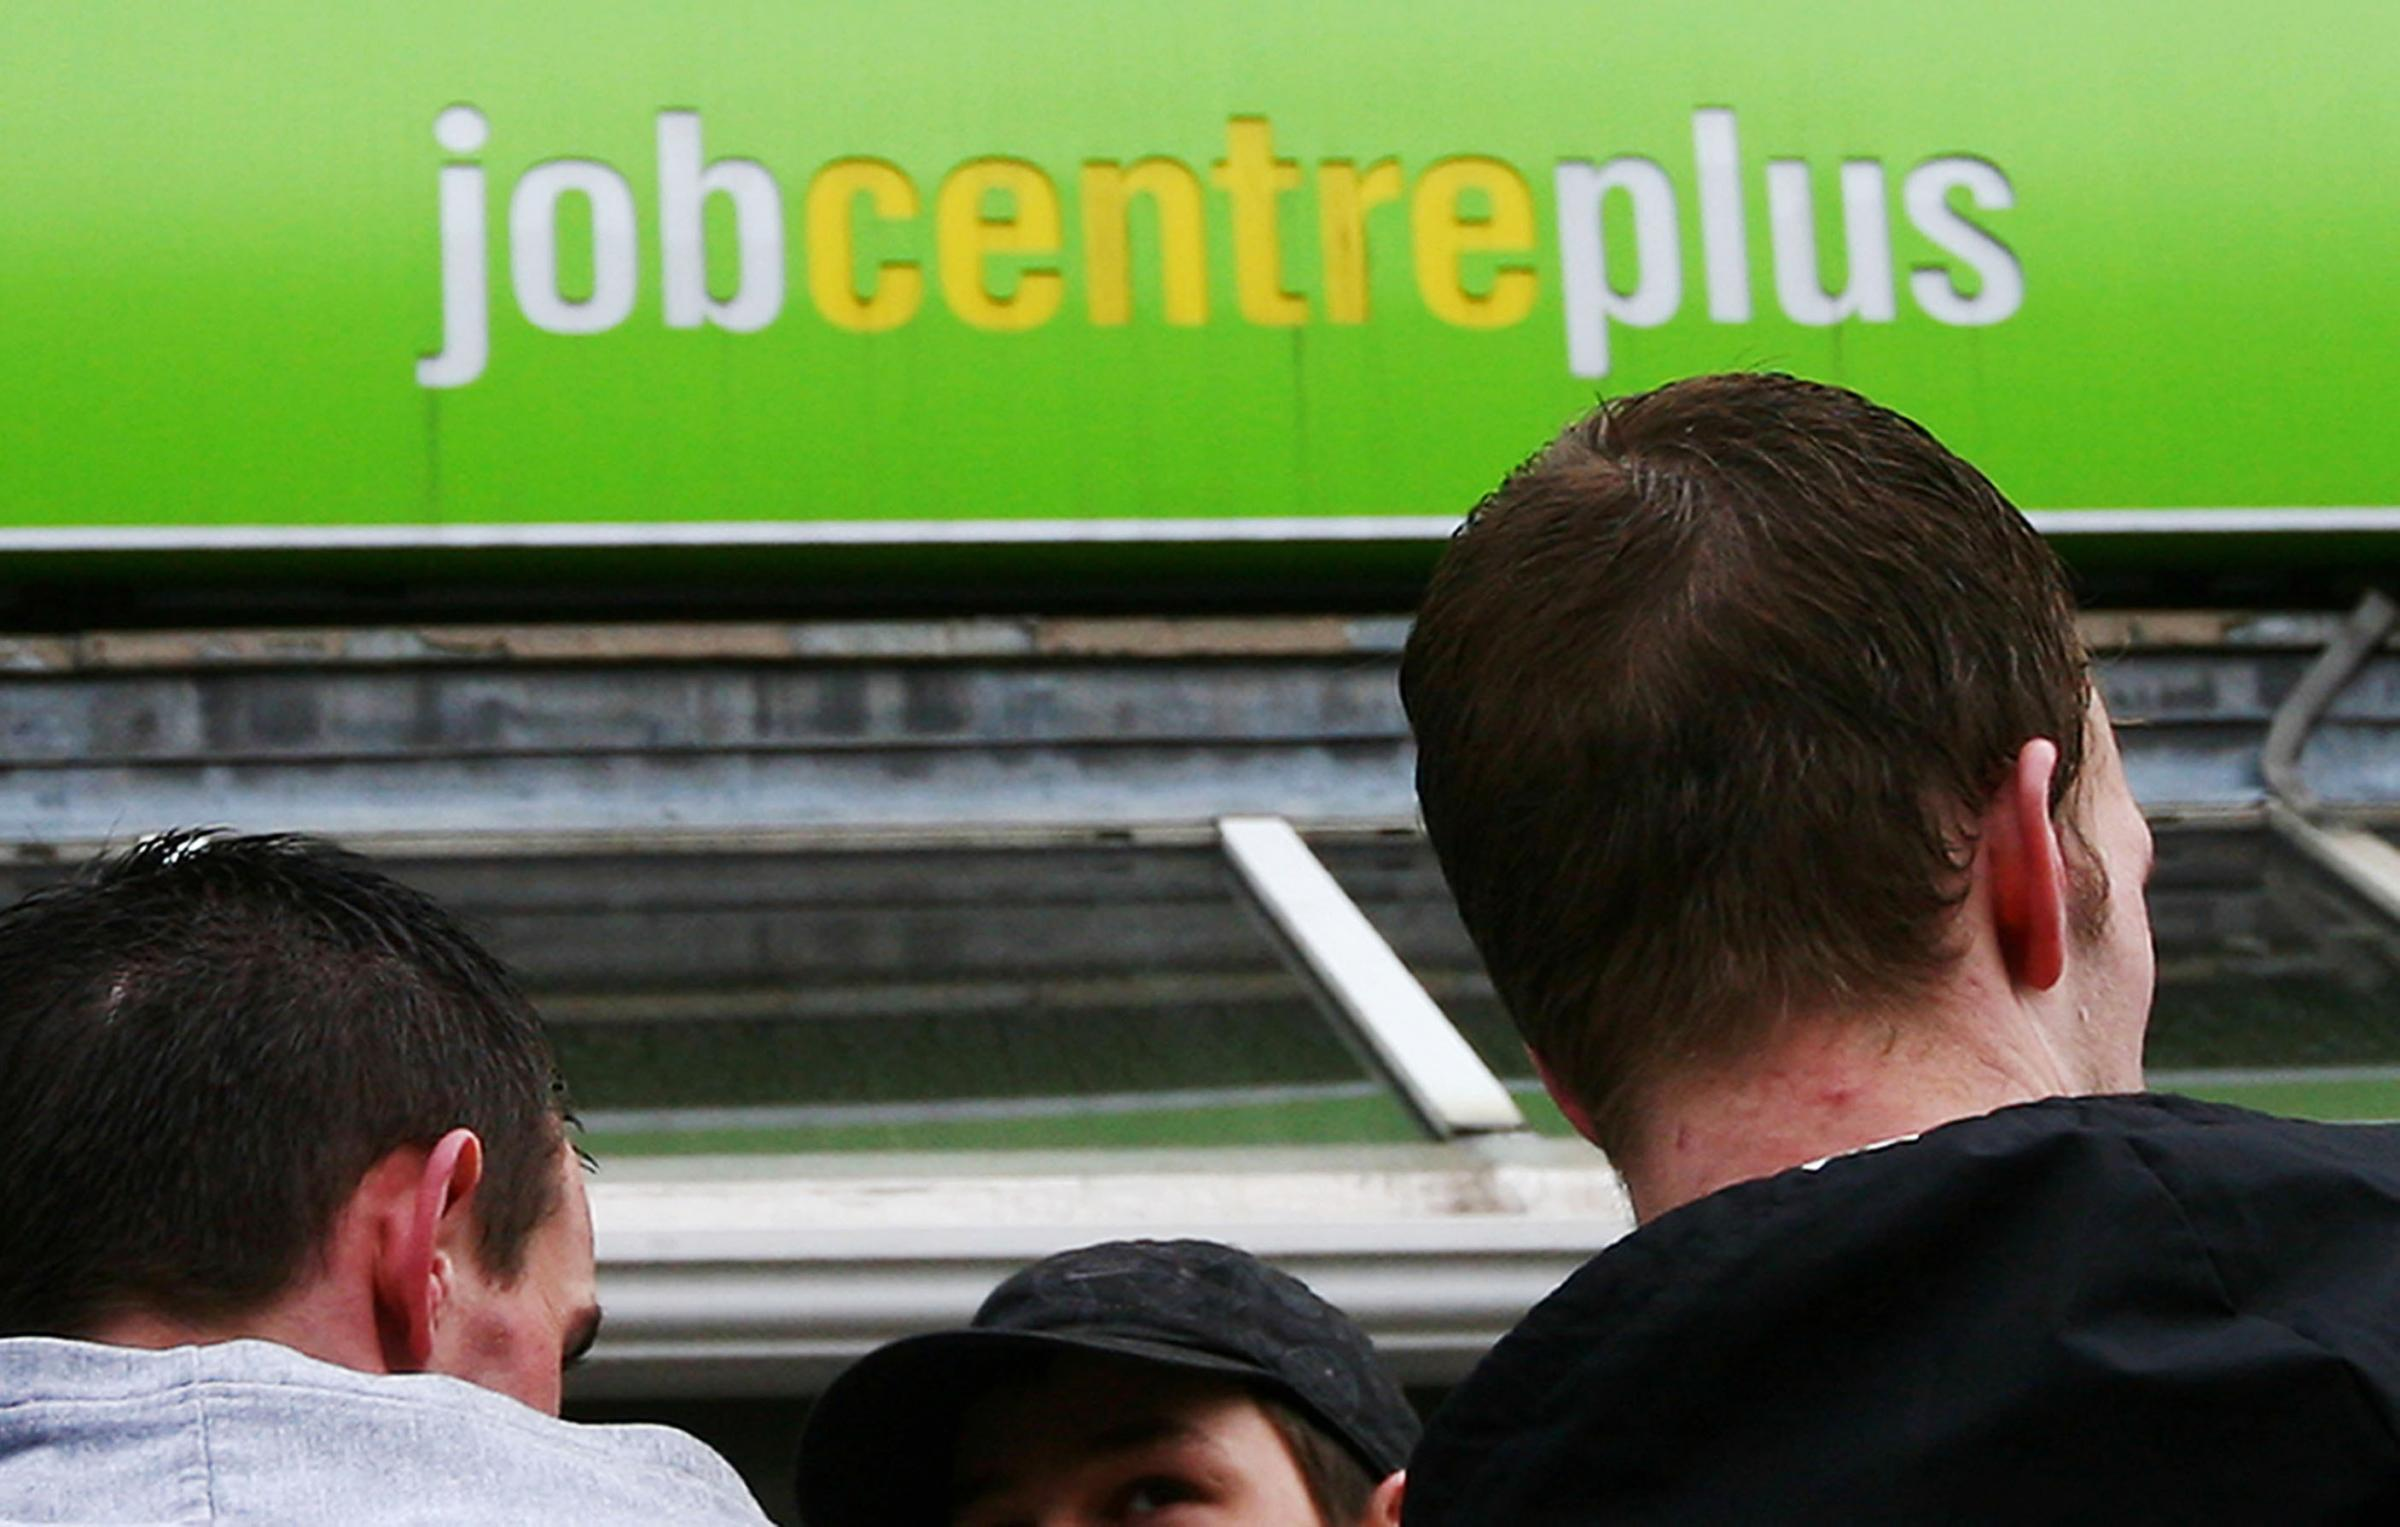 File photo dated 19/03/09 of a Job Centre Plus branch as latest unemployment figures will be released later today. PRESS ASSOCIATION Photo. Issue date: Wednesday February 17, 2016.  Photo credit should read: Gareth Fuller/PA Wire